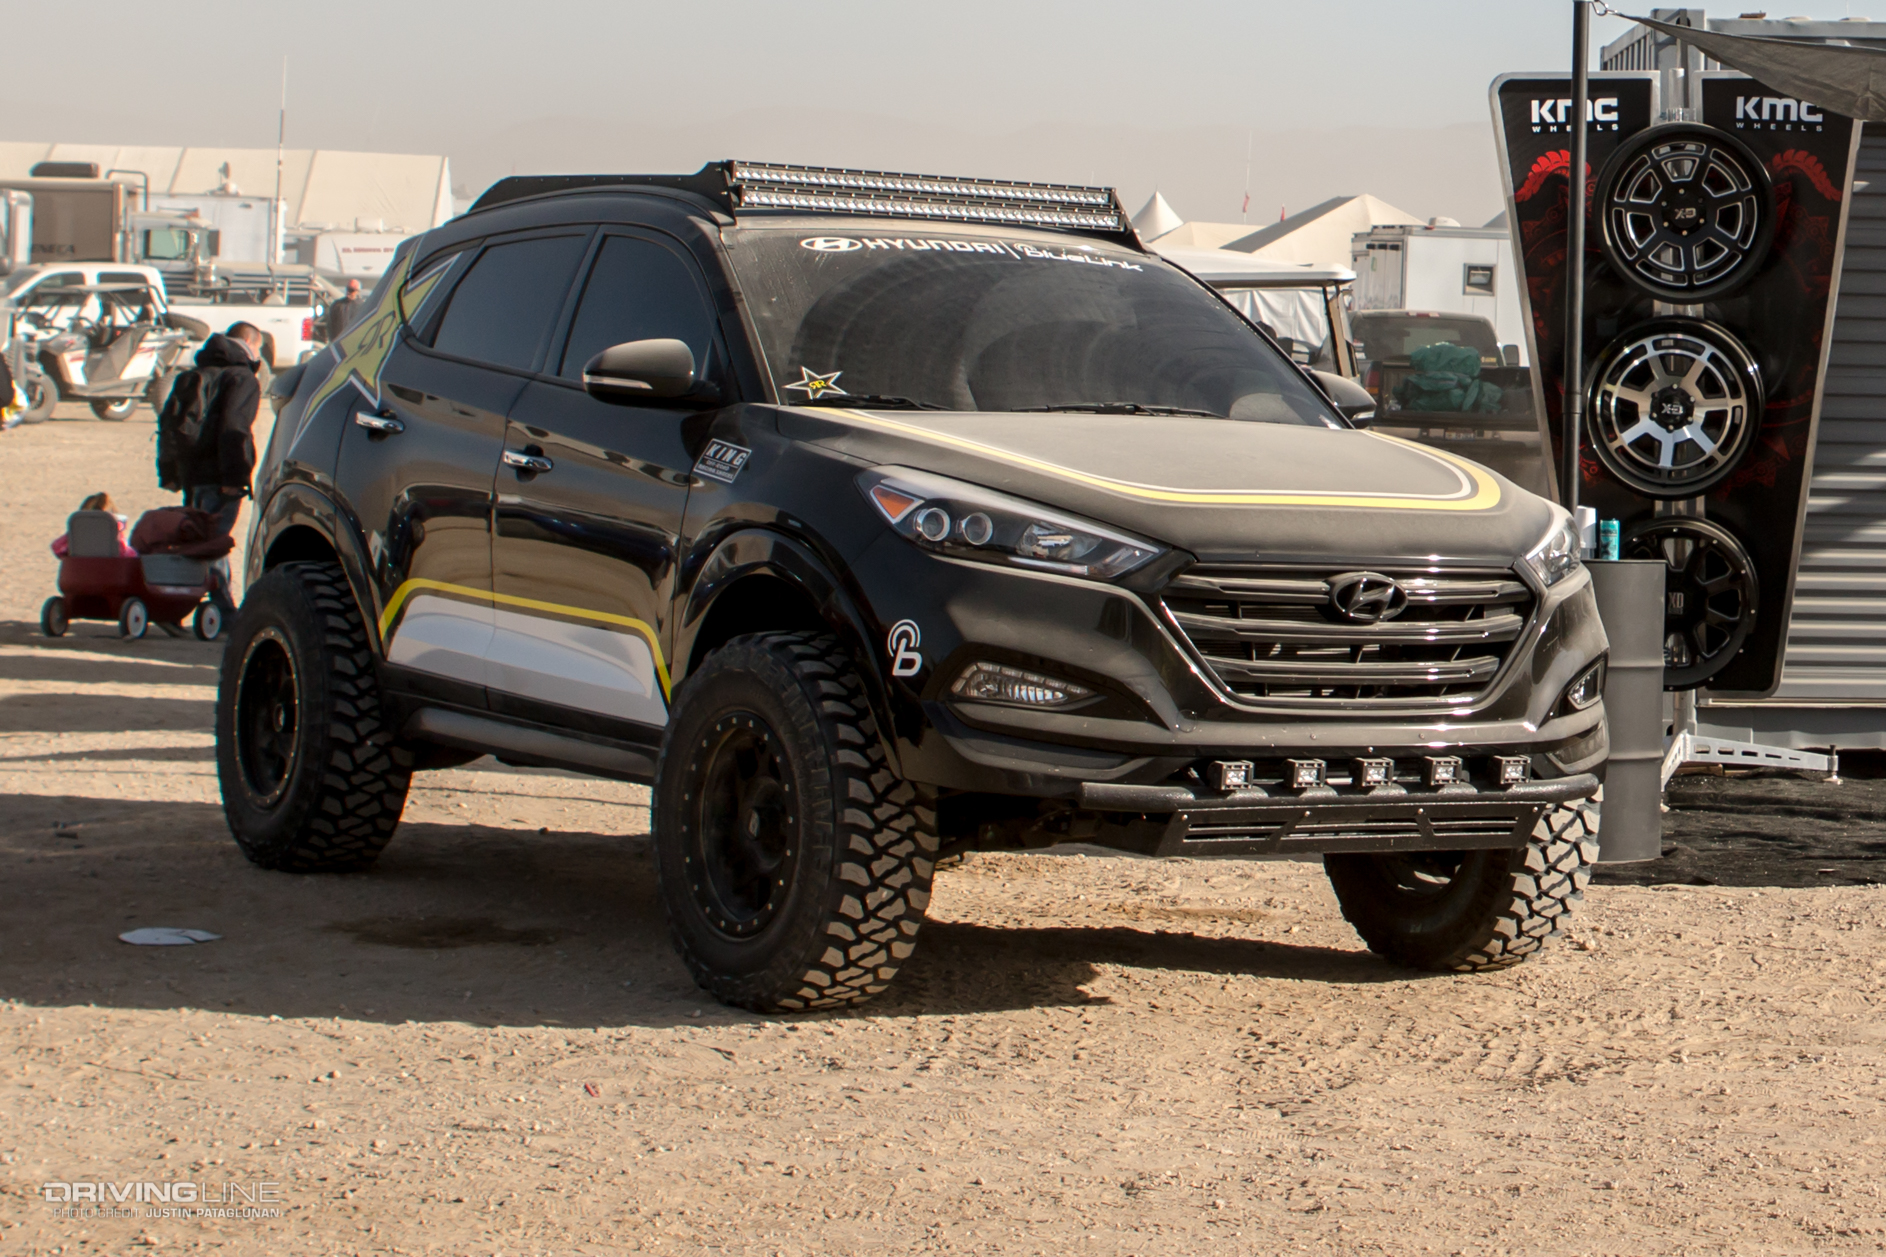 Parking Lot Finds From Koh You Have To See Drivingline